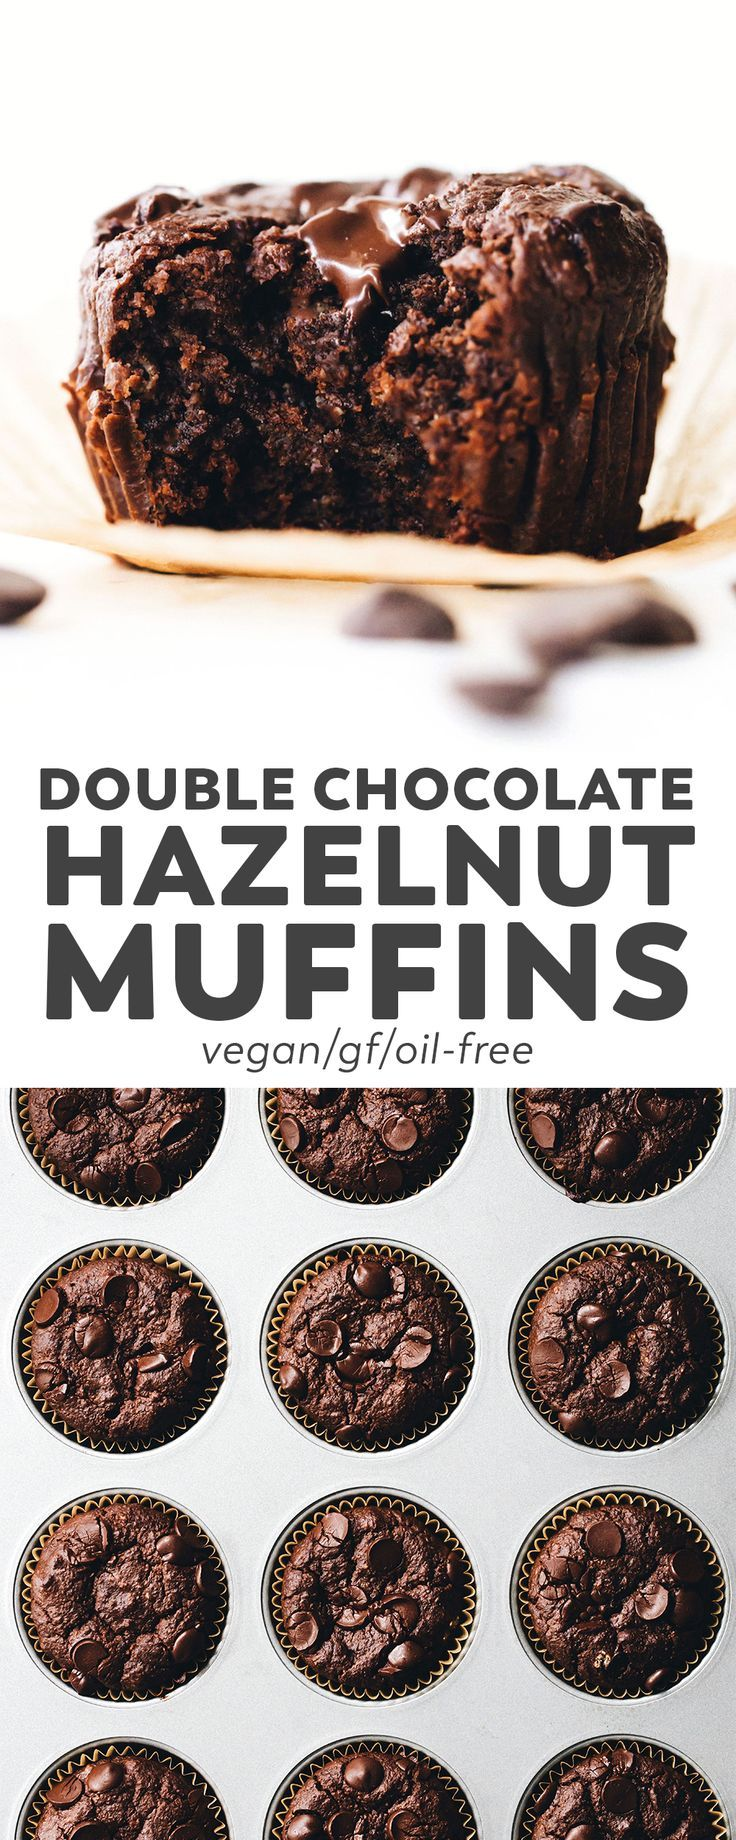 Double Chocolate Hazelnut Muffins (Vegan + GF)